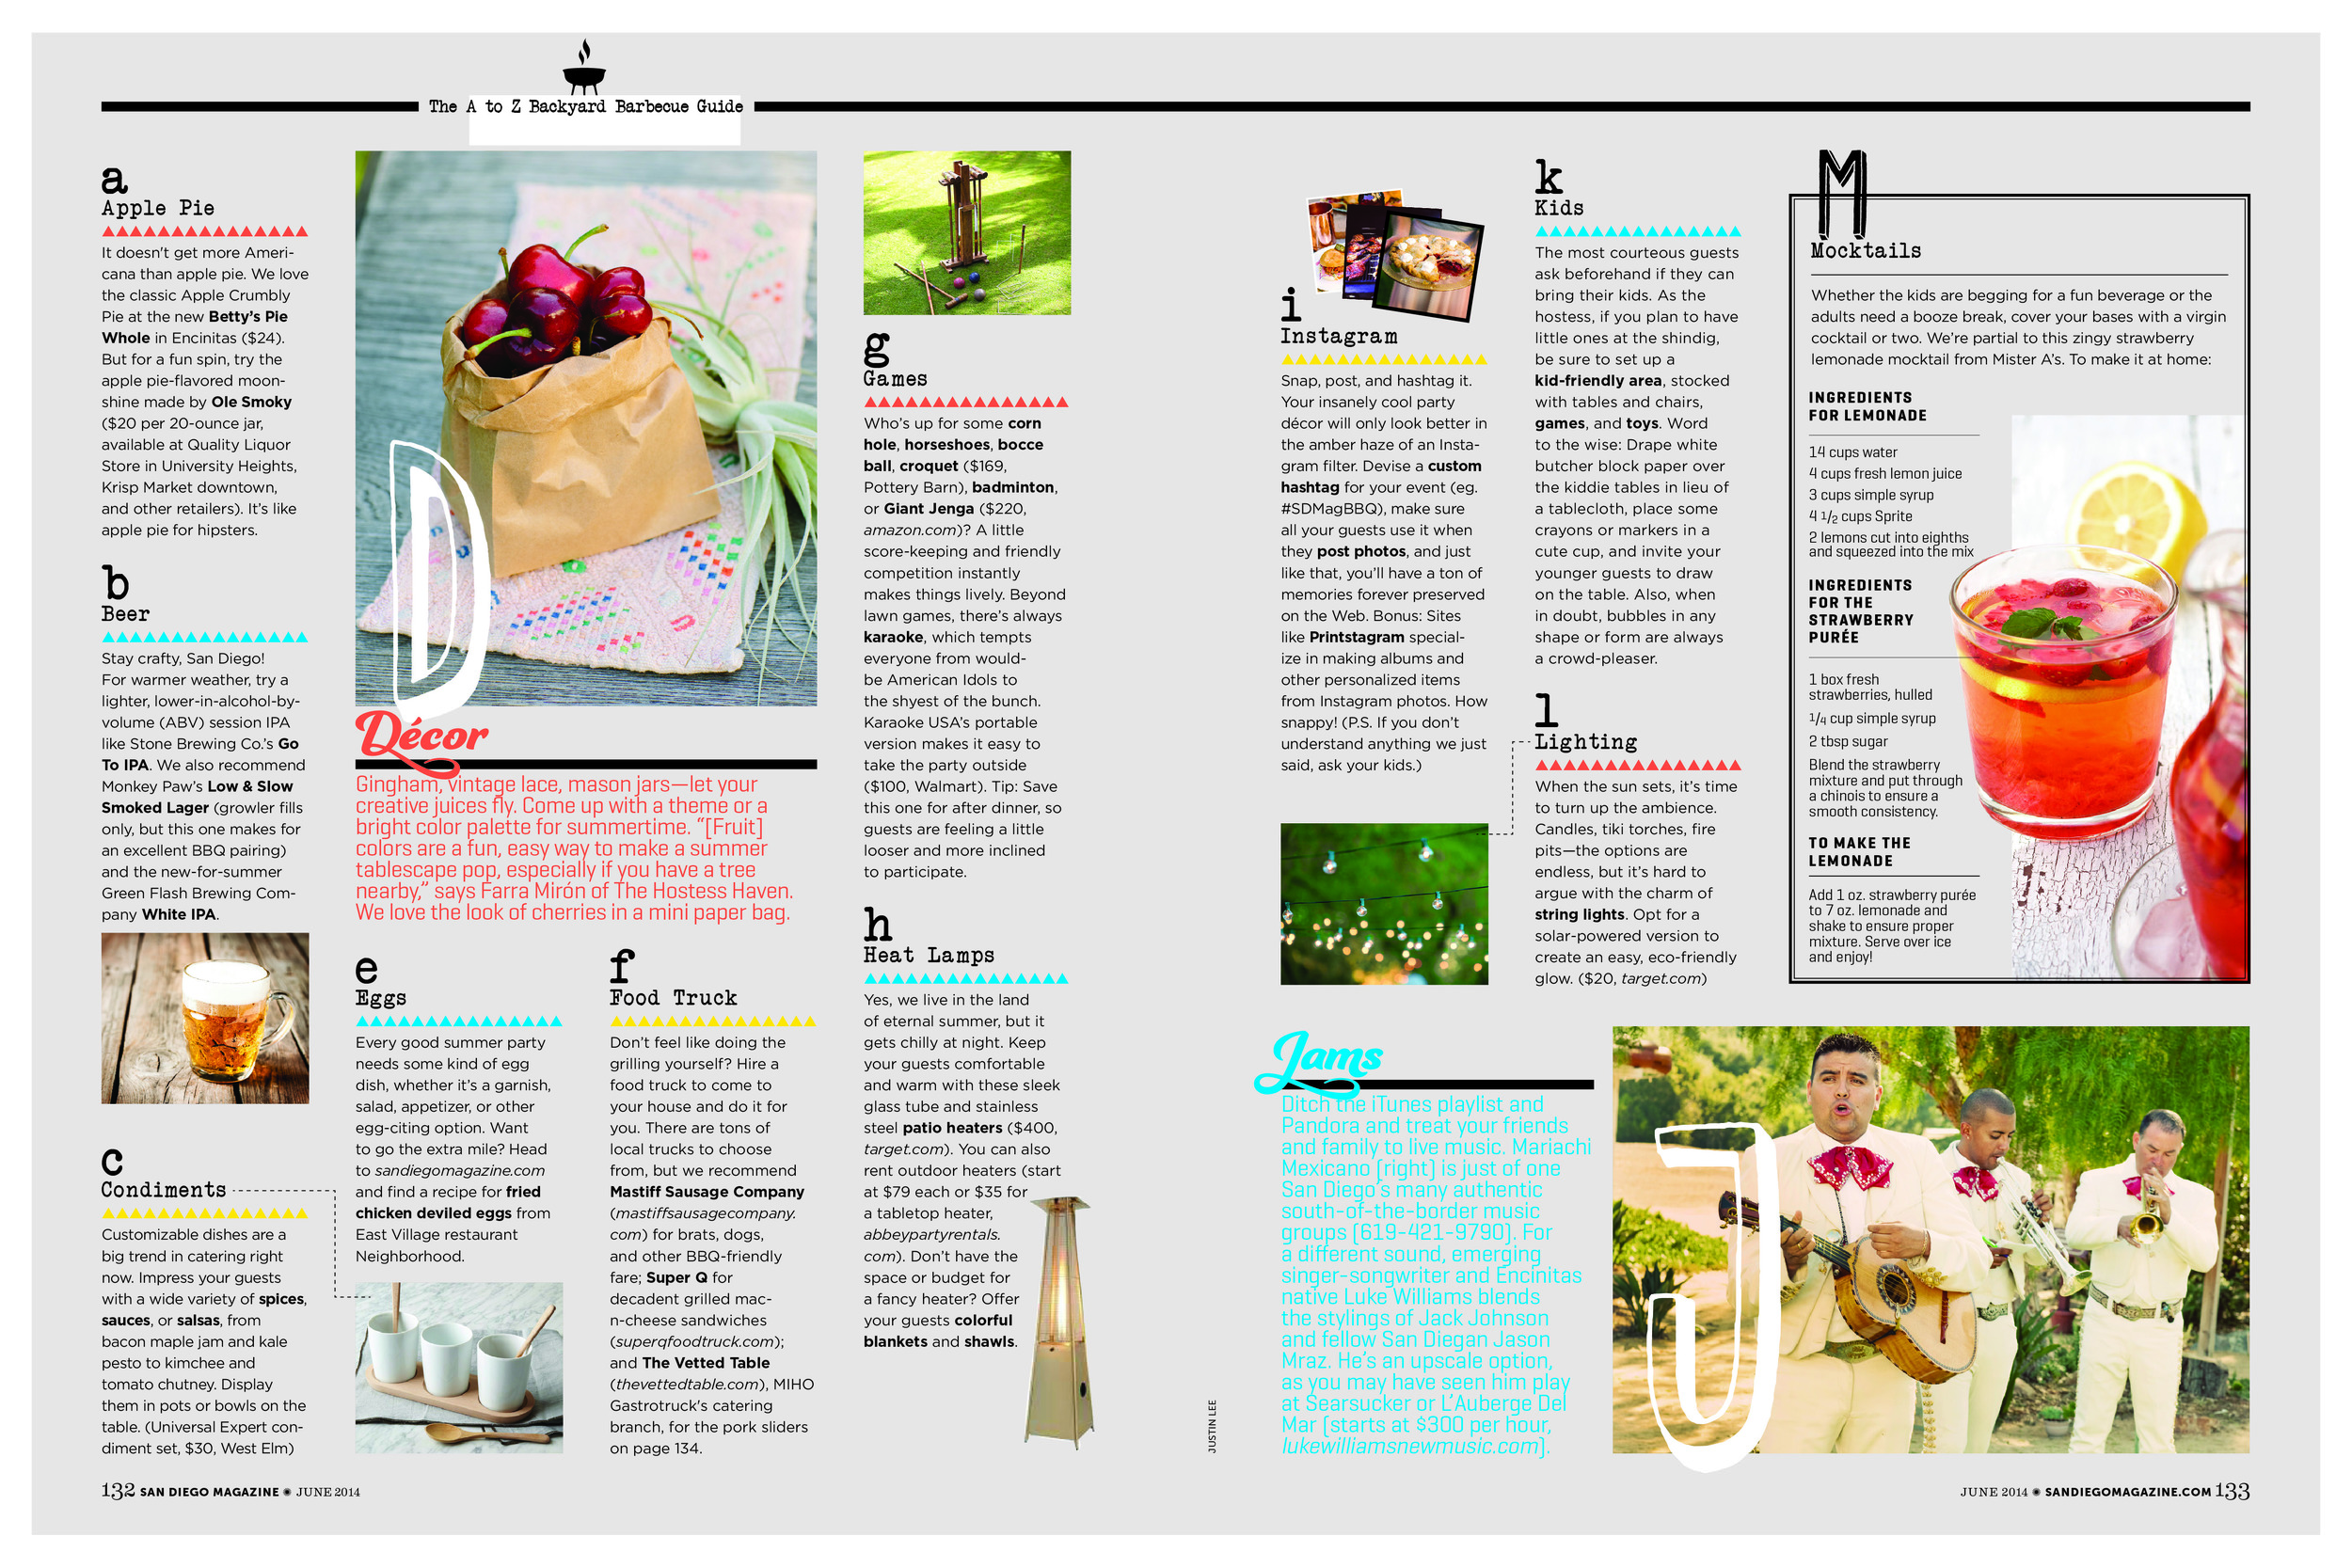 website magazine spreads3.jpg